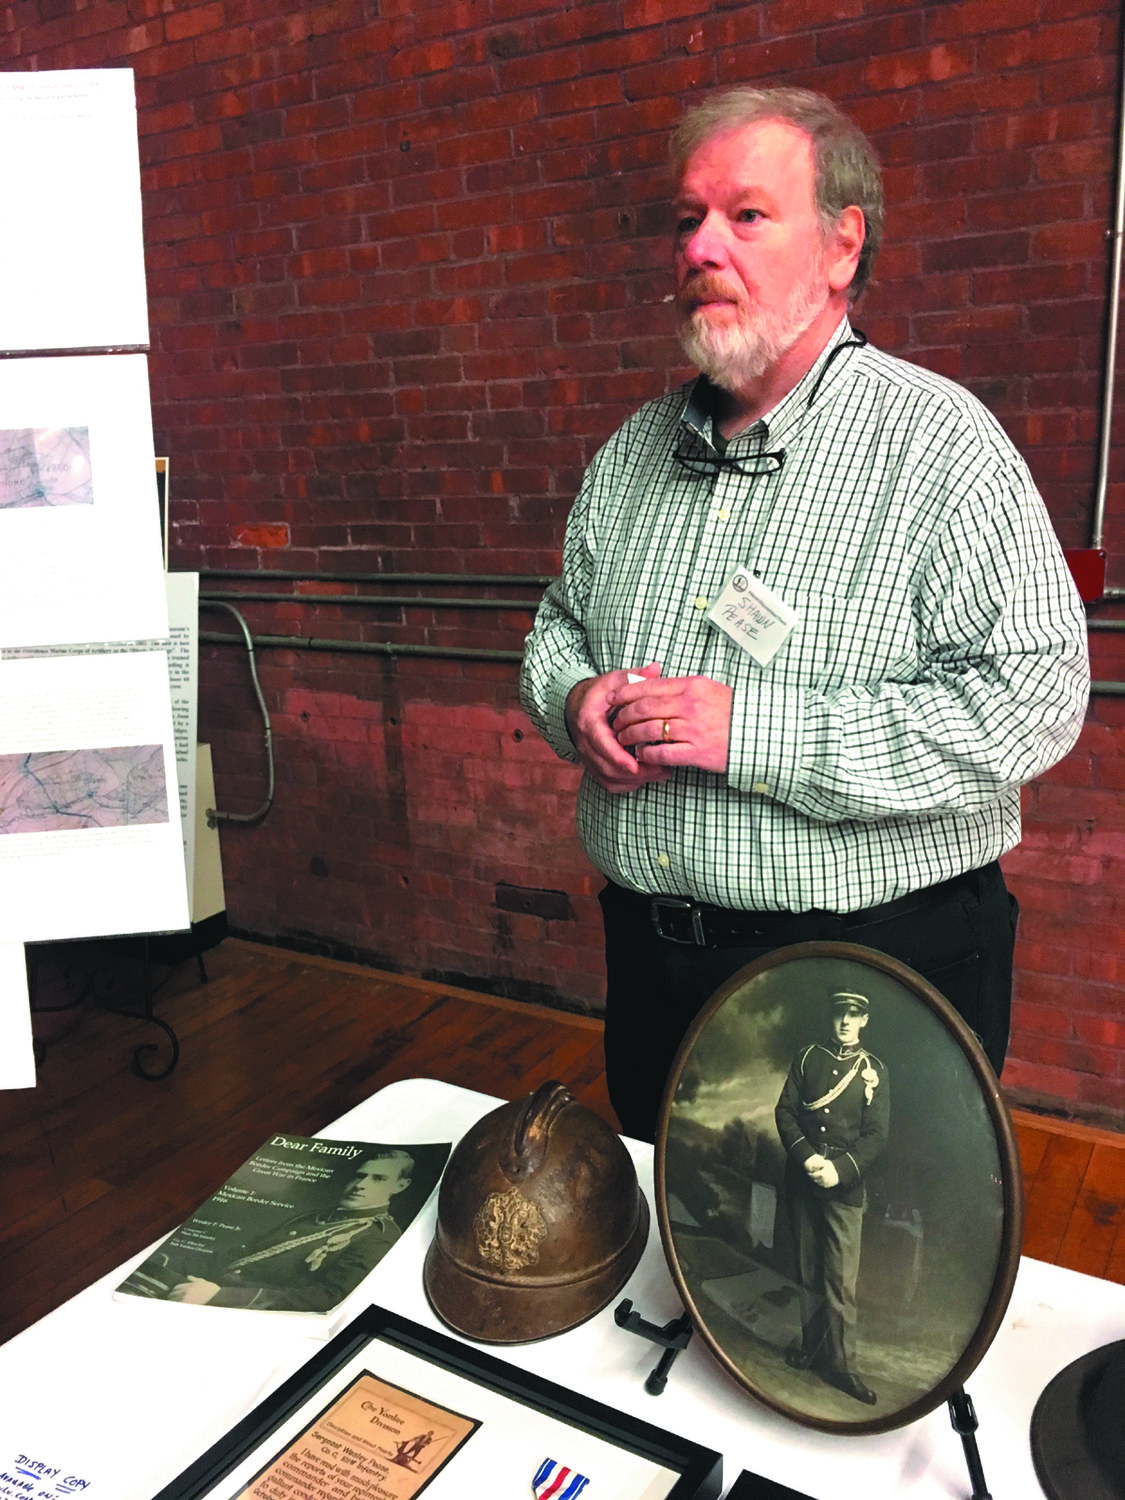 LETTERS FROM THE FRONT: Shawn Pease of Seekonk, Mass. presents his grandfather's history at the Armory on Friday night.